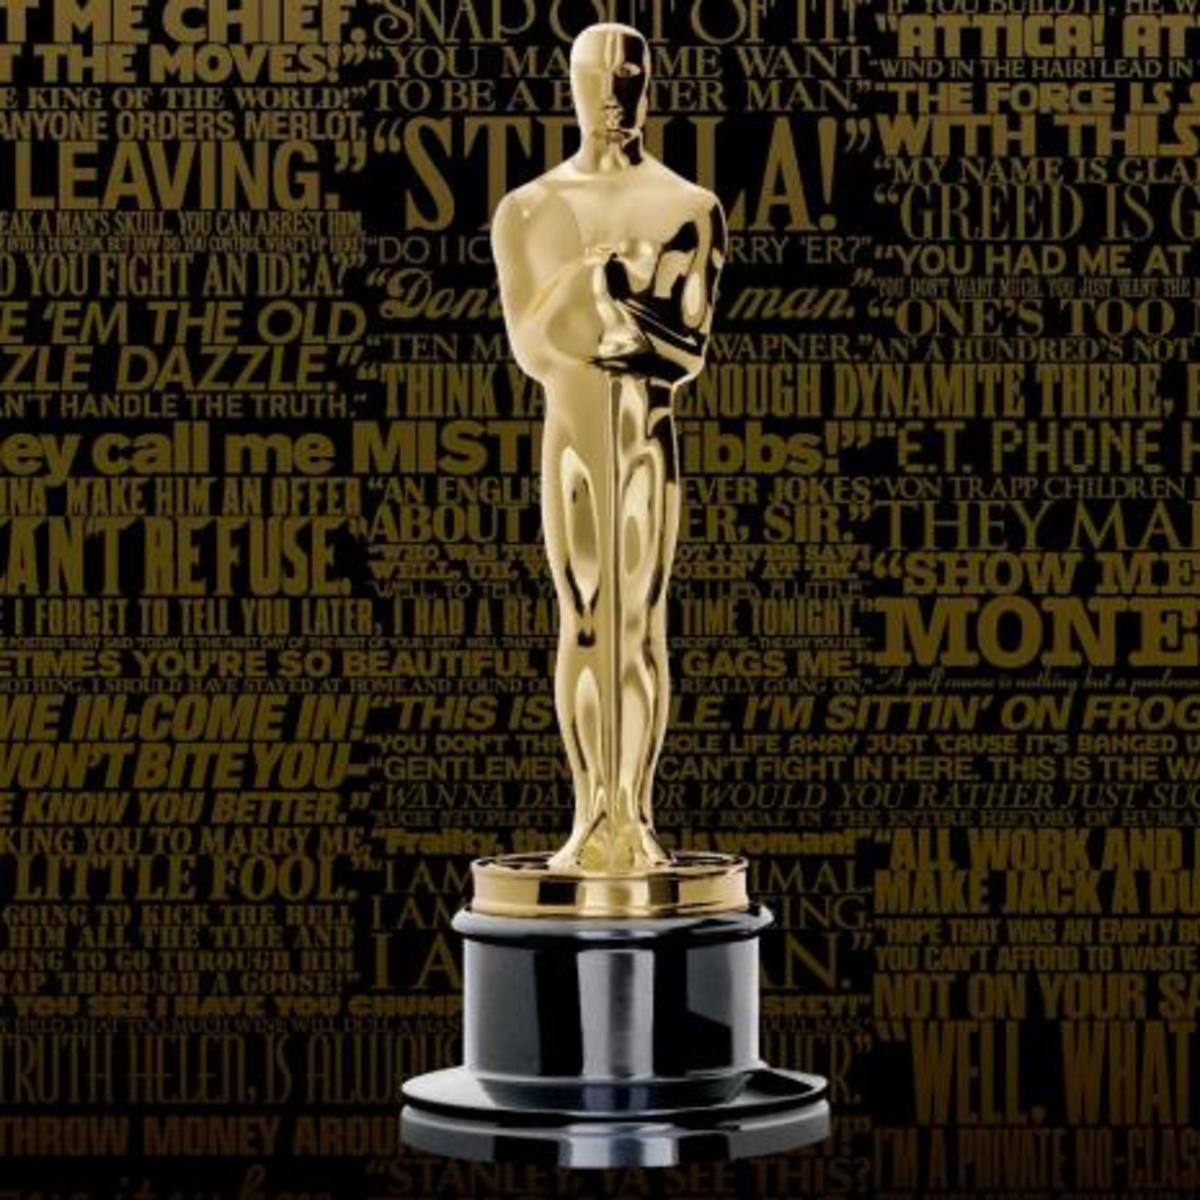 The dream of most screenwriters is to win the Oscar!